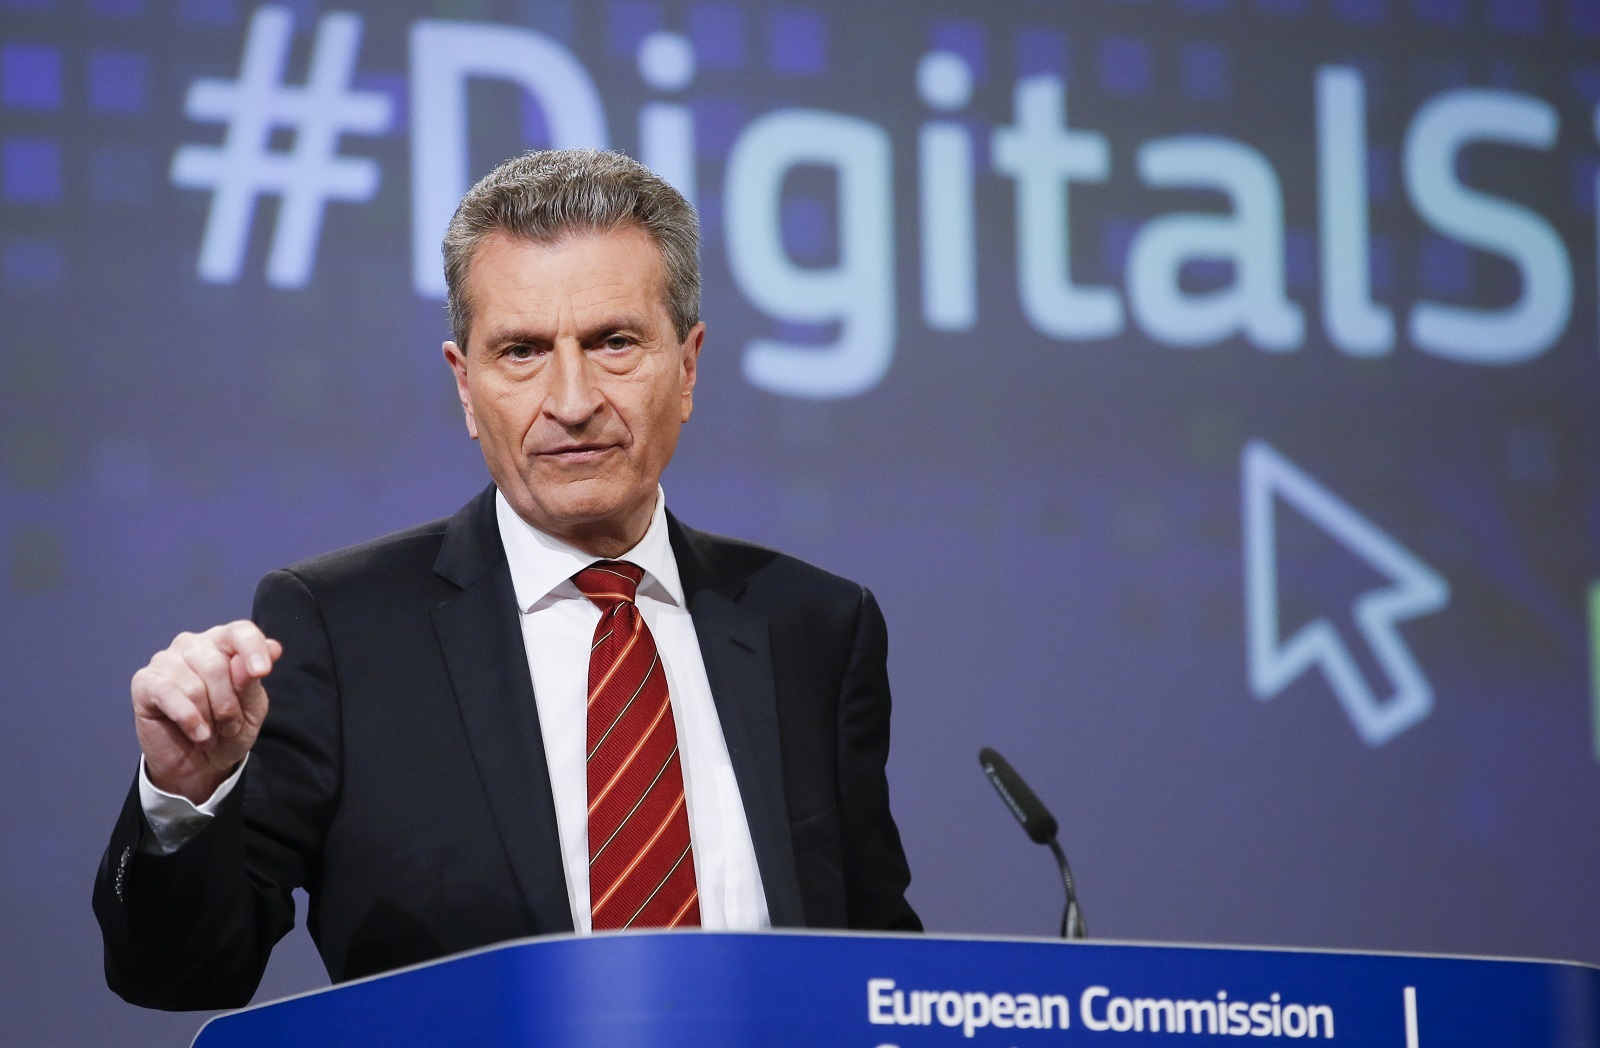 EU Commissioner for the Digital Economy and Society Guenther Oettinger